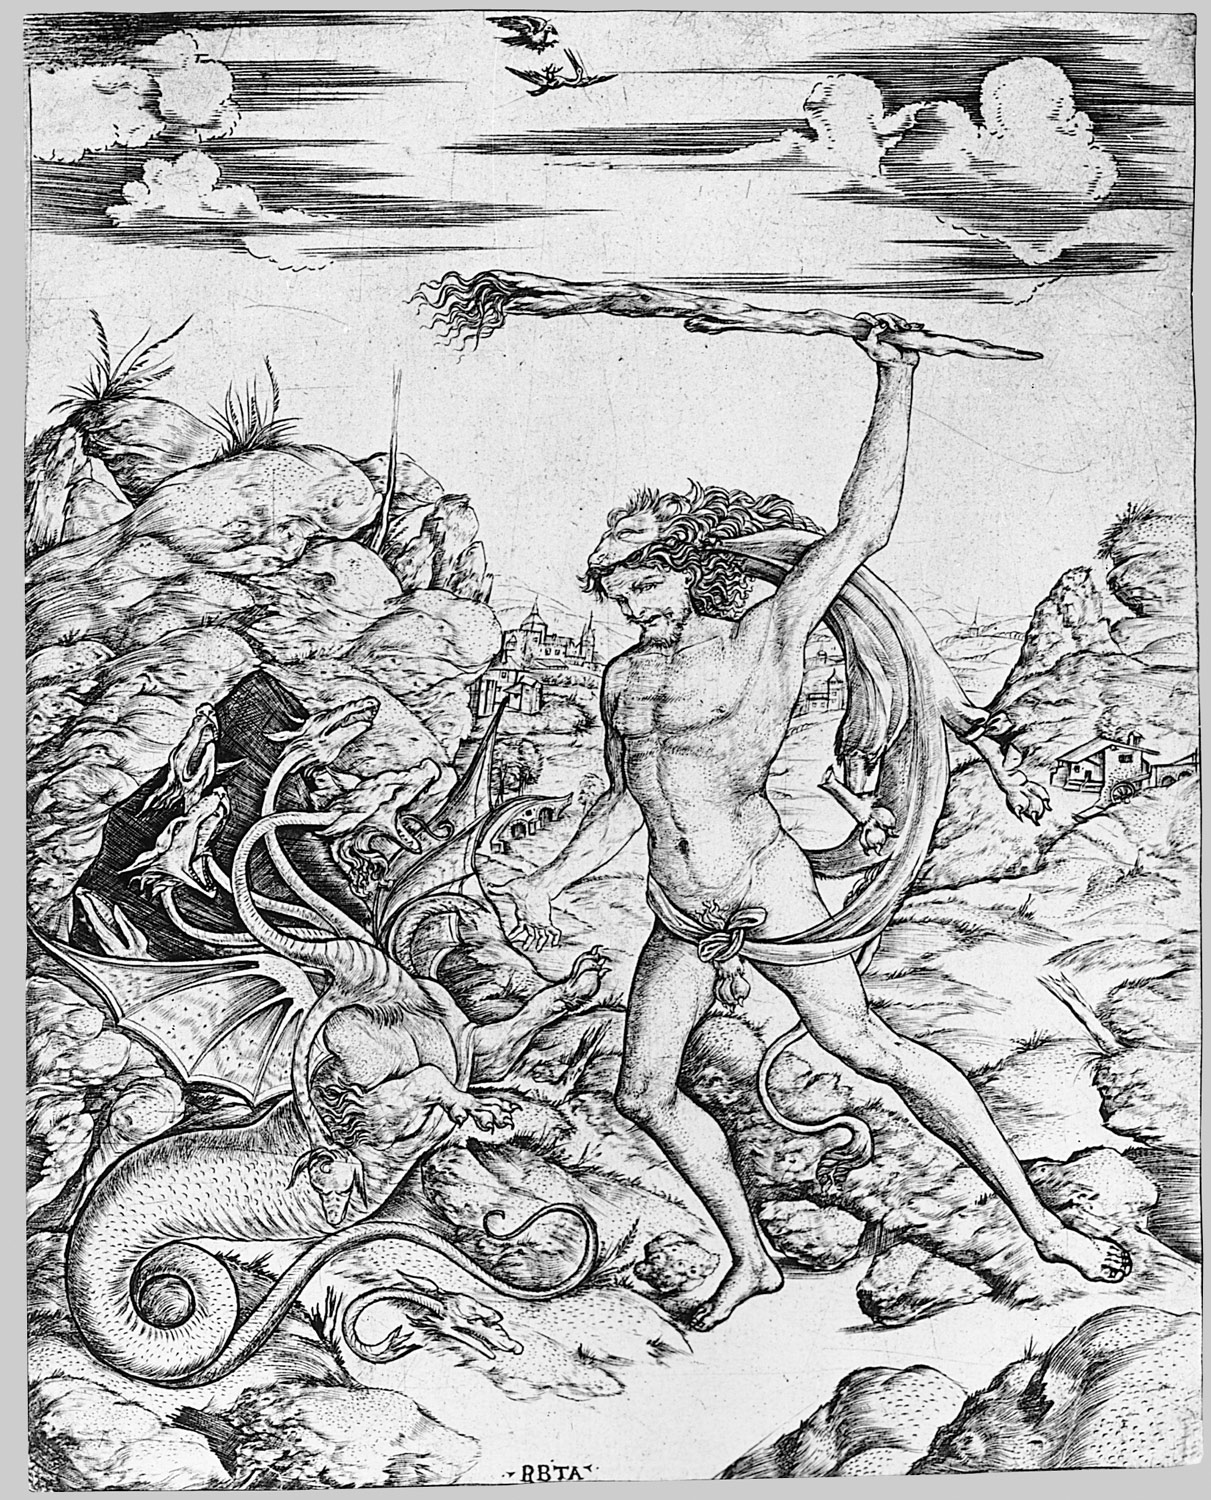 the labors of herakles essay heilbrunn timeline of art history hercules and the hydra wielding a torch he attacks the winged multi headed